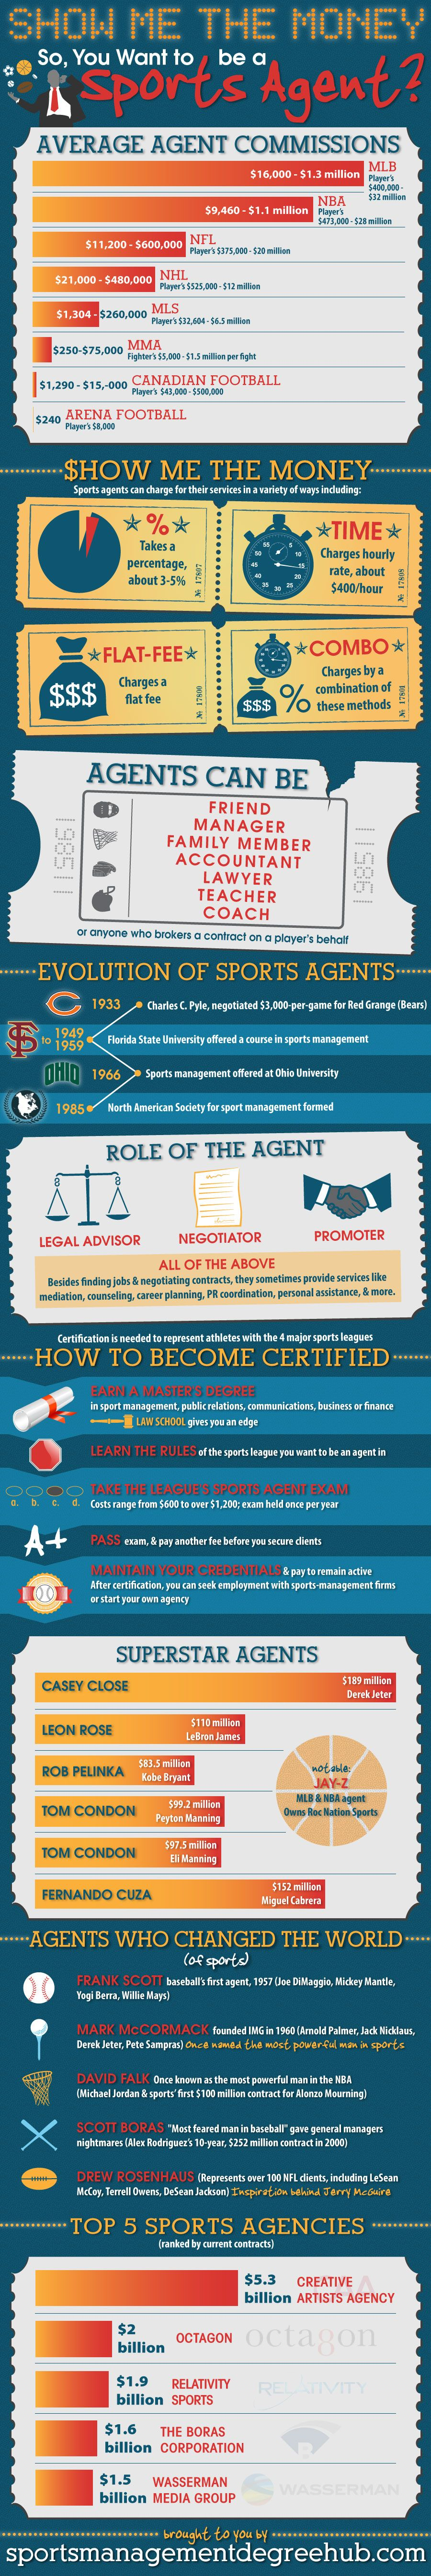 Infographic Seeks To Show Interested Sports Agents The Money In The Business Sports Agent Blog Sport Management Management Degree Marketing Degree